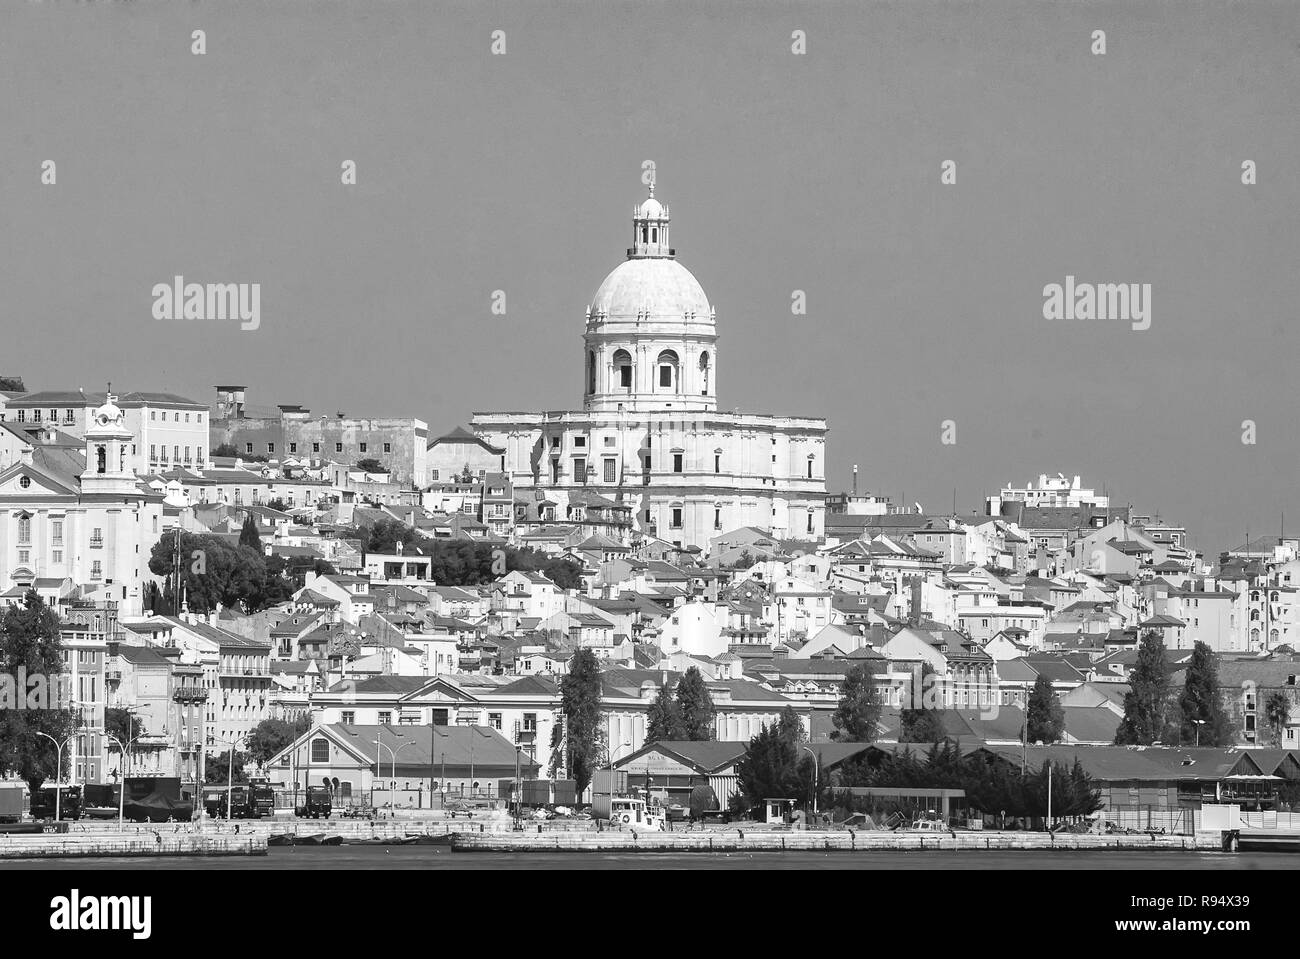 Lisbon Portugal April 03 2010 City View From Sea Church Building And Houses On Sunny Blue Sky Architecture And Design Concept City Skyline On Urban Landscape Travelling On Summer Vacation Stock Photo Alamy